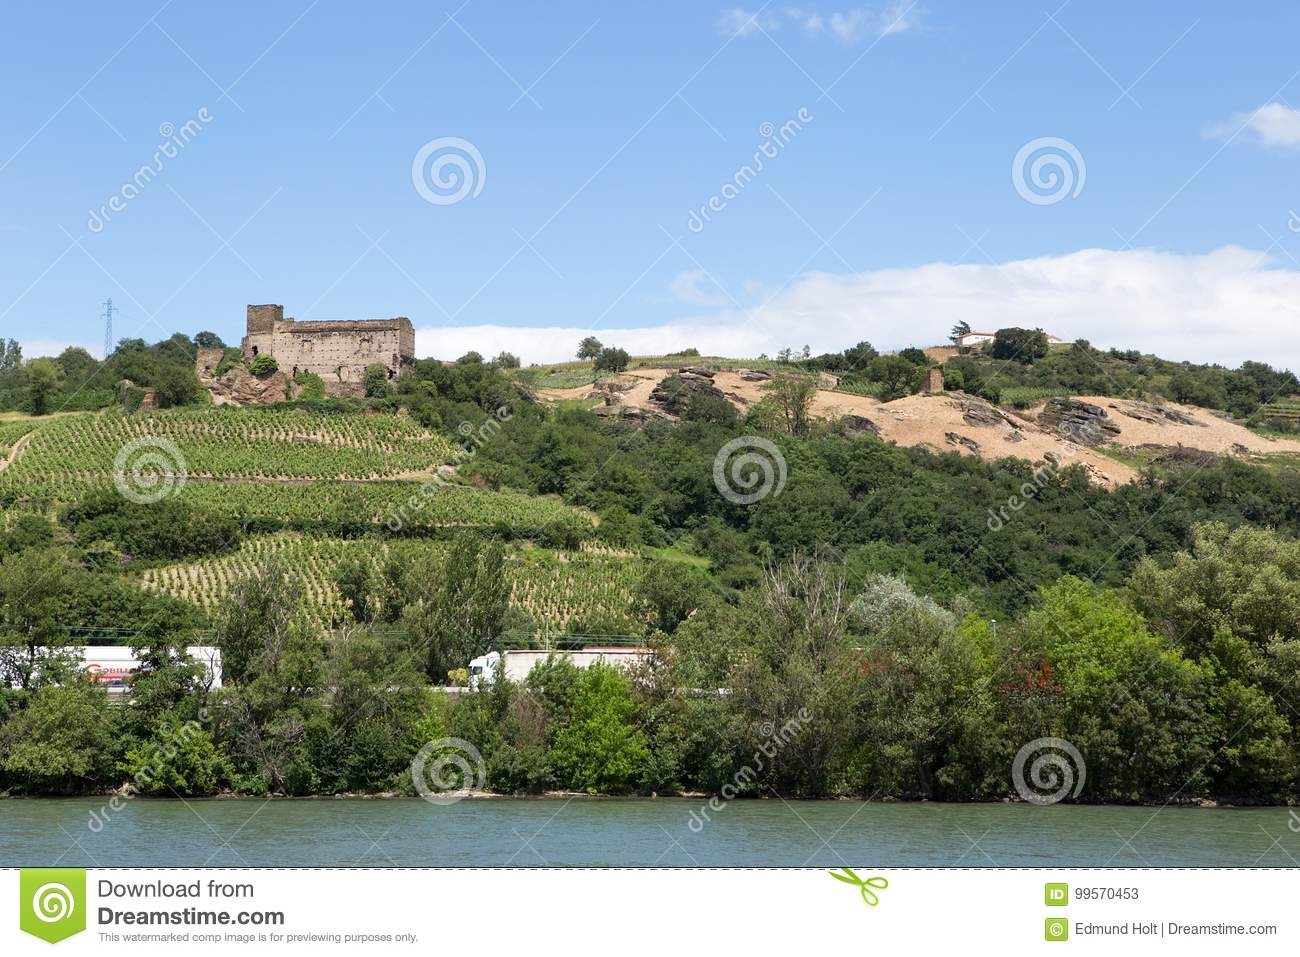 Vineyards by the River Rhone, France